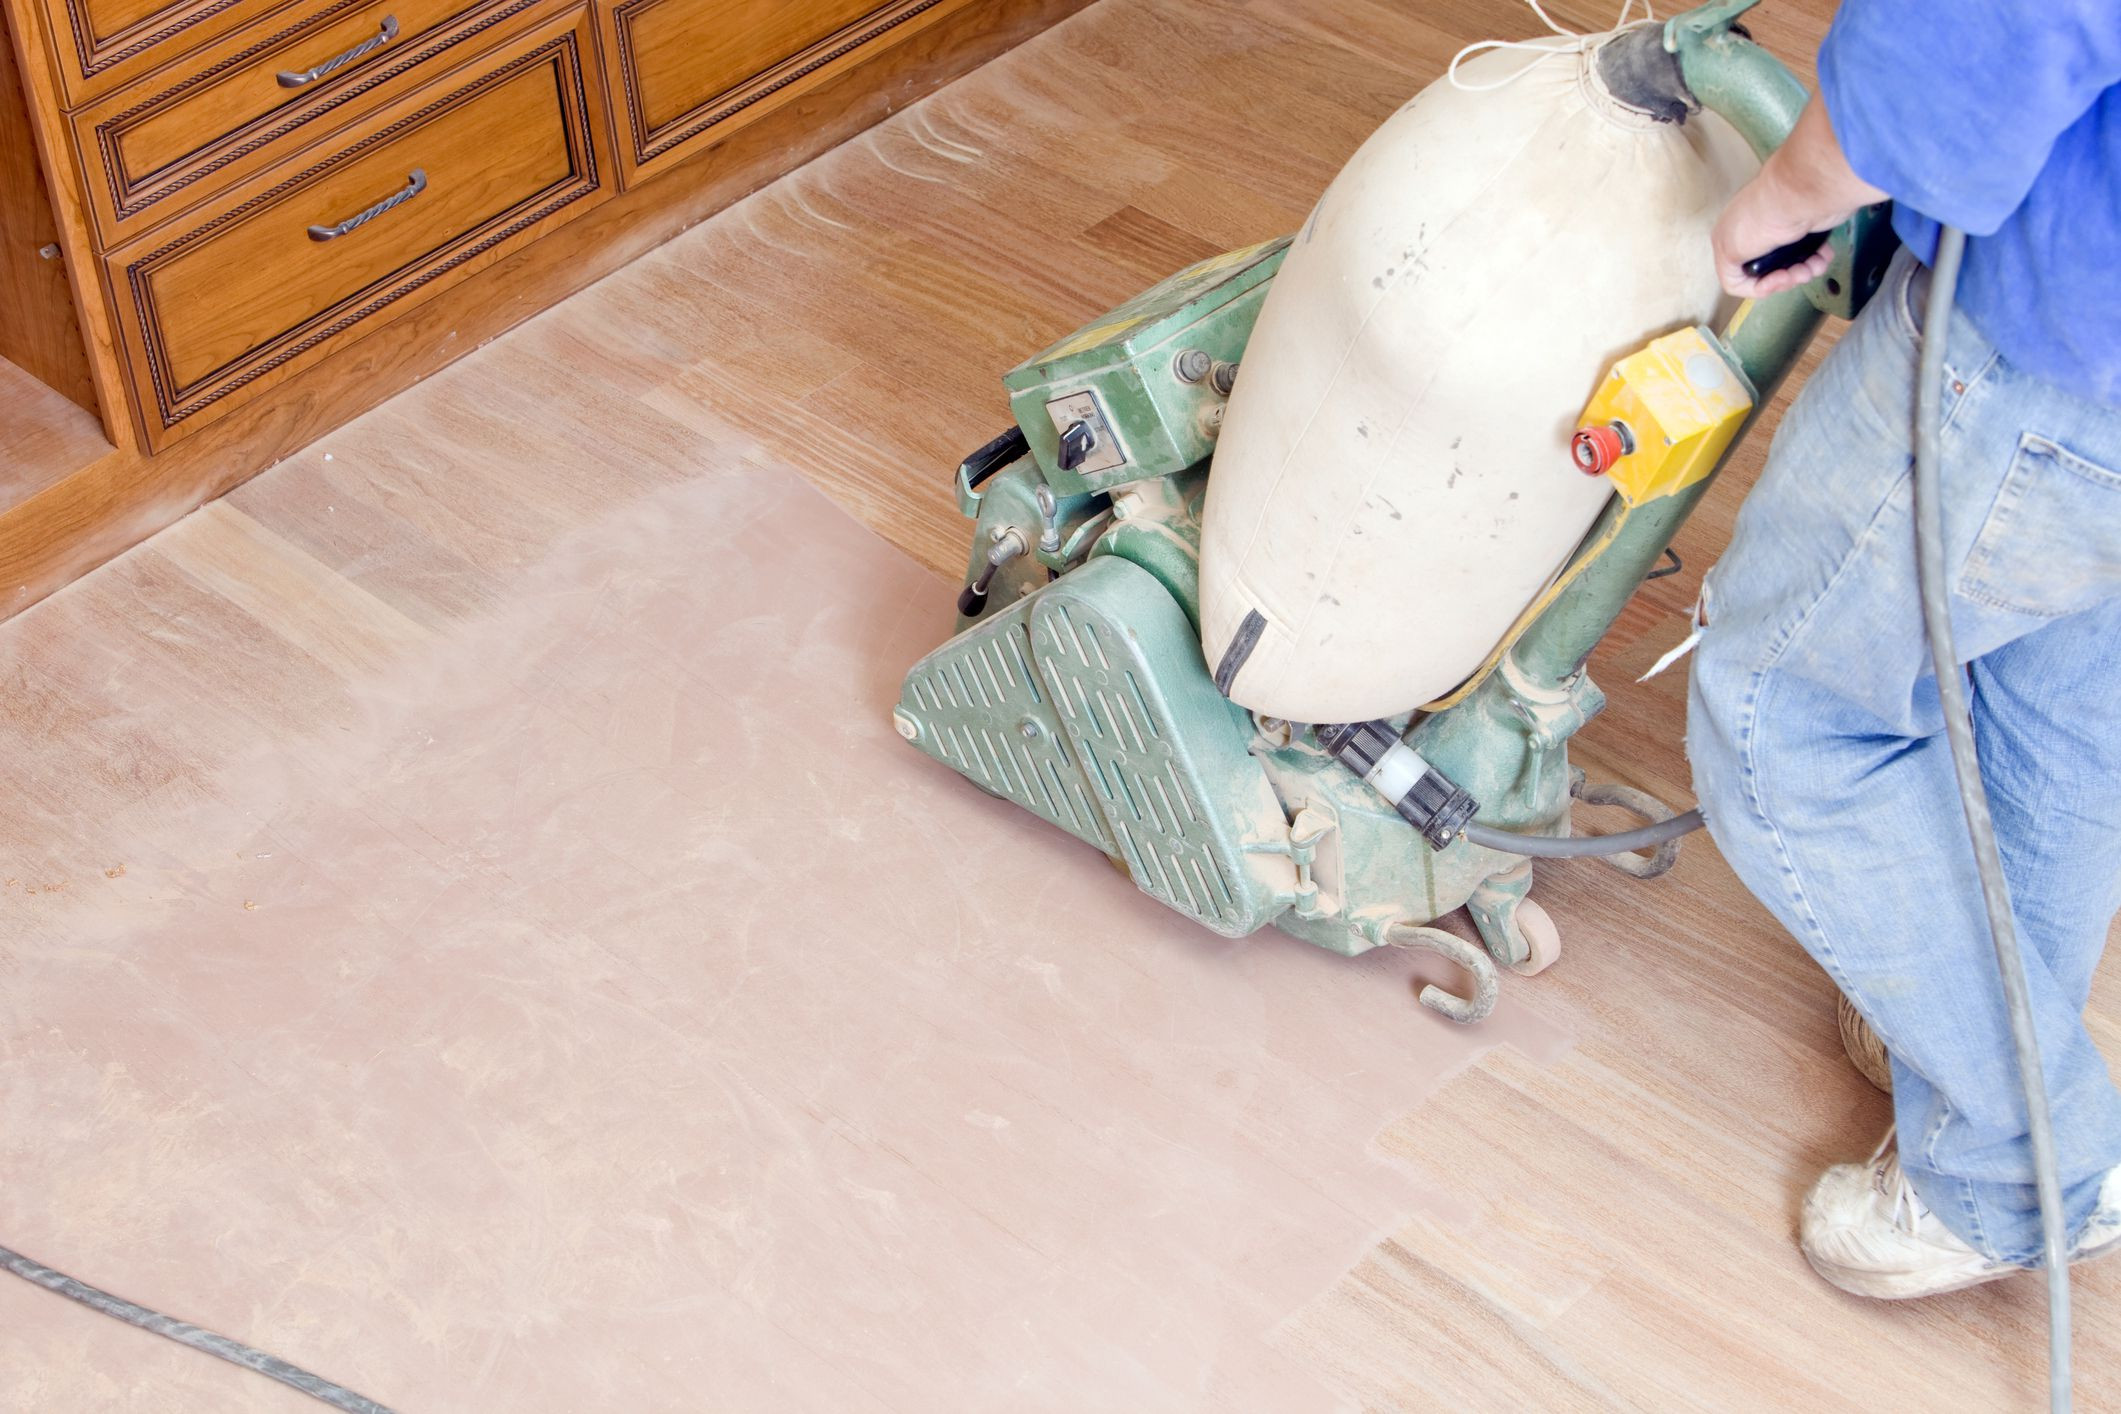 hardwood floor refinishing winnipeg of how to sand hardwood floors throughout gettyimages 183776482 587b01375f9b584db3a41541